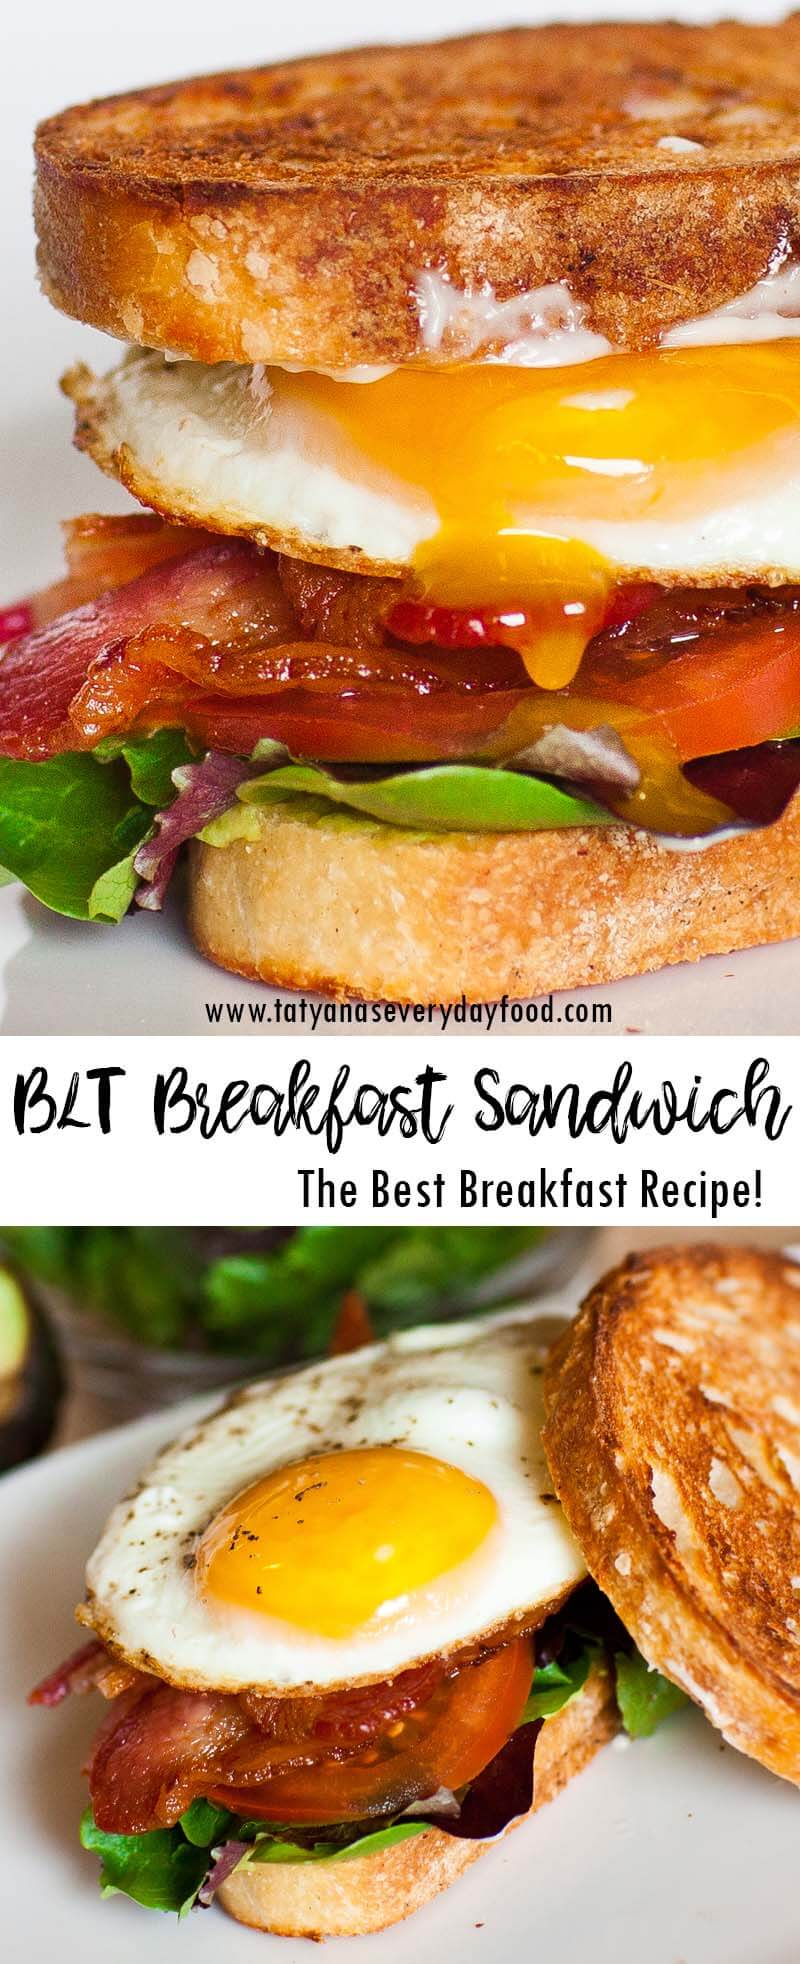 BLT Breakfast Sandwich video recipe